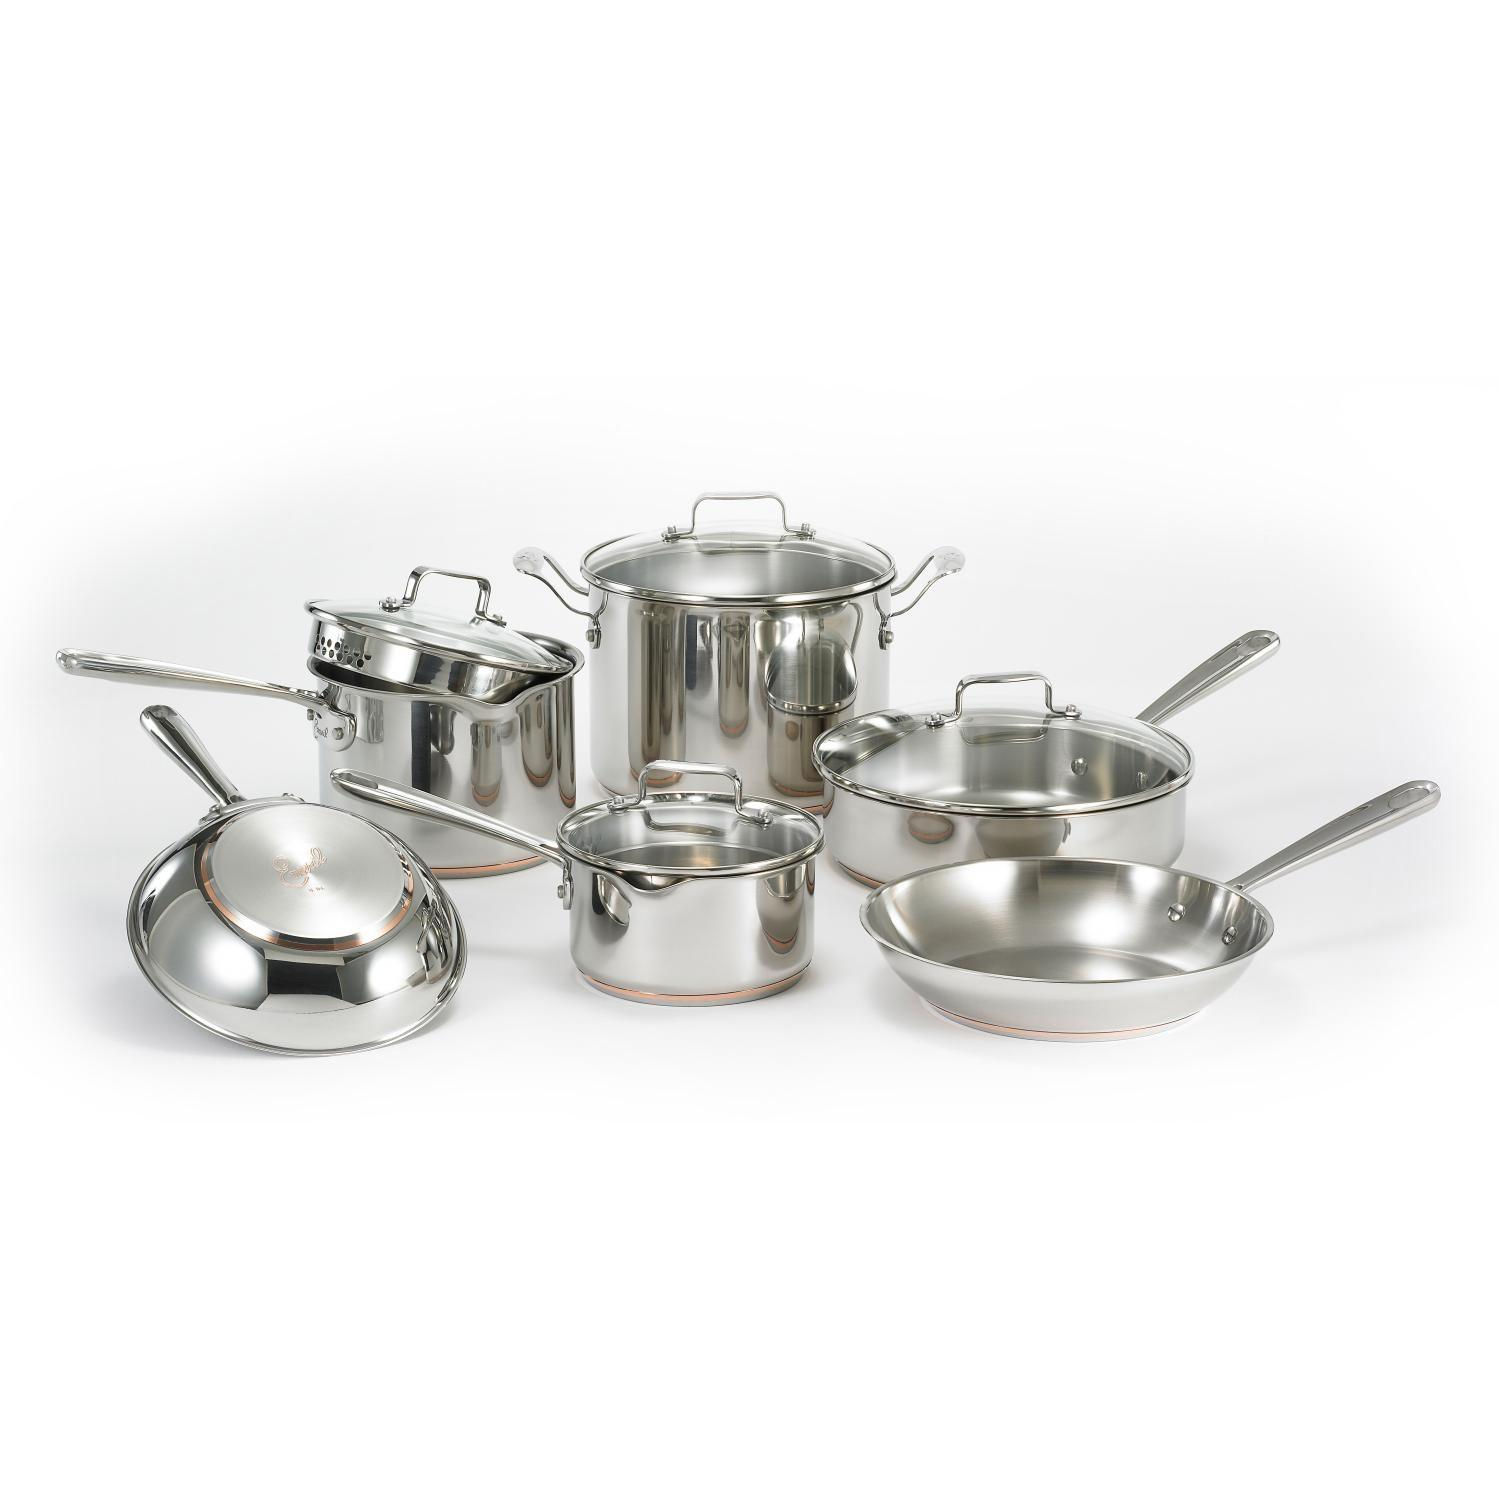 Emerilware By All-Clad 10-Piece Stainless Cookware Set - E937SA64